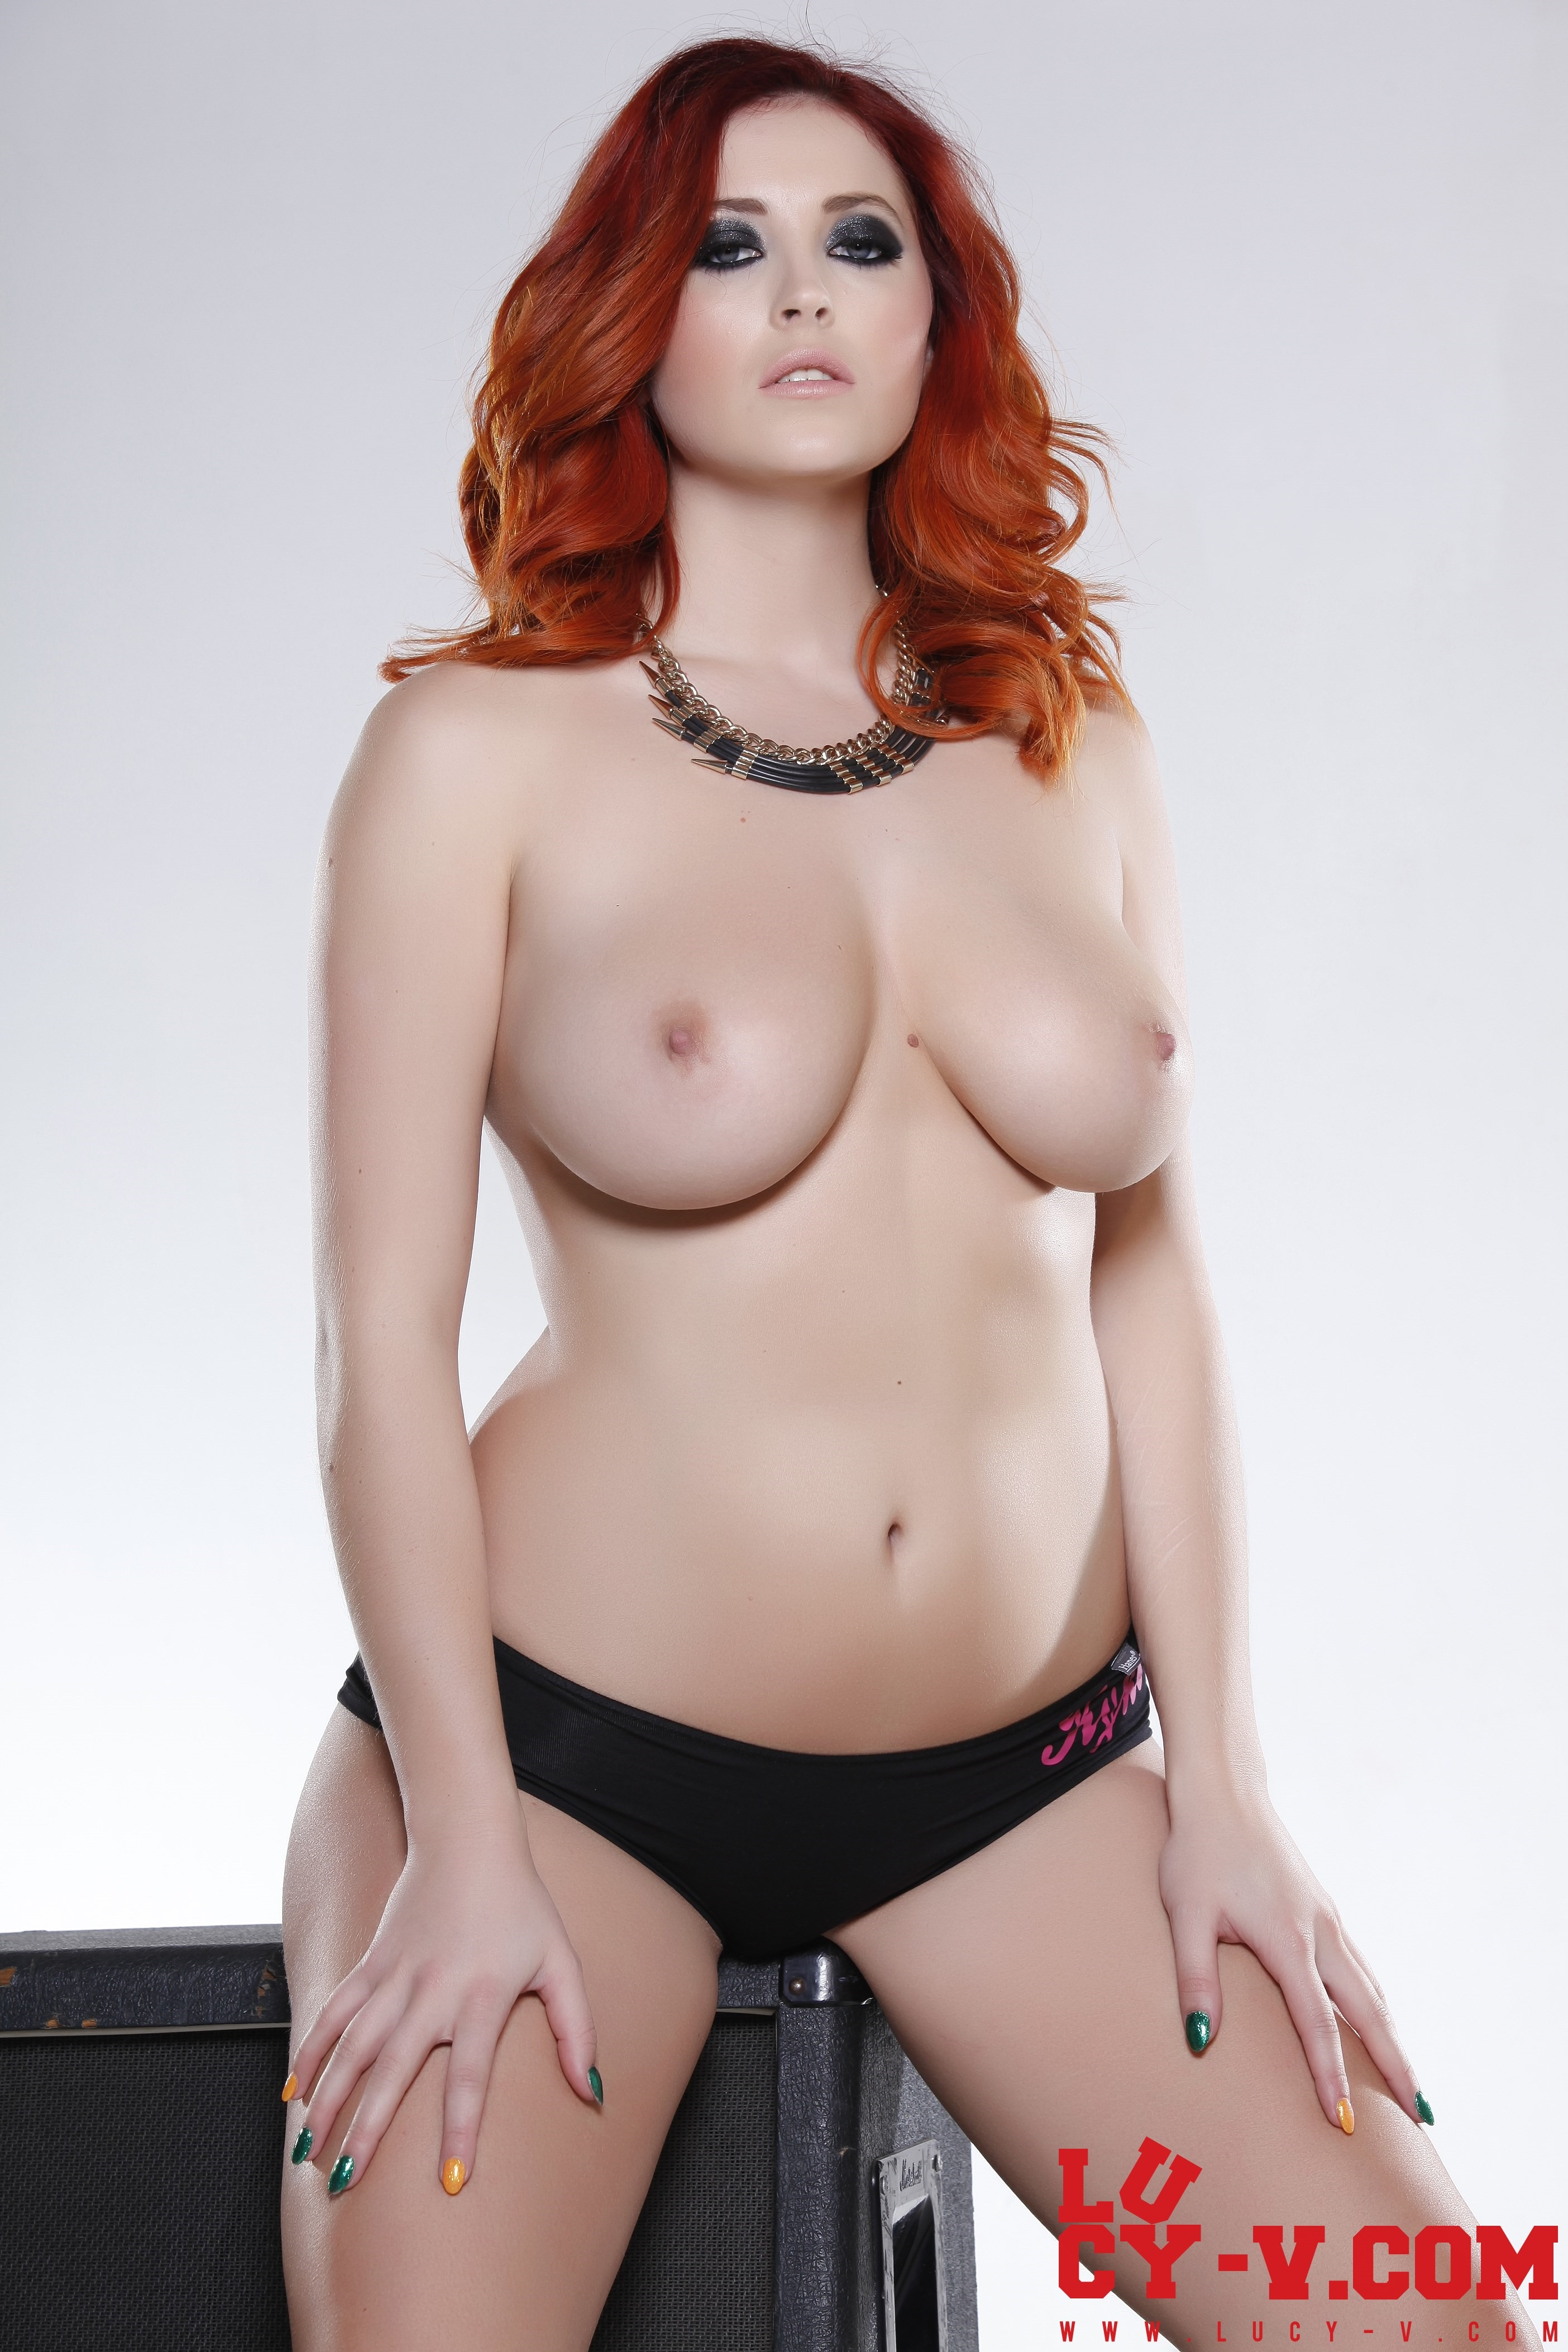 Lucy V Topless in Black Panties | Sexy Naked Redhead